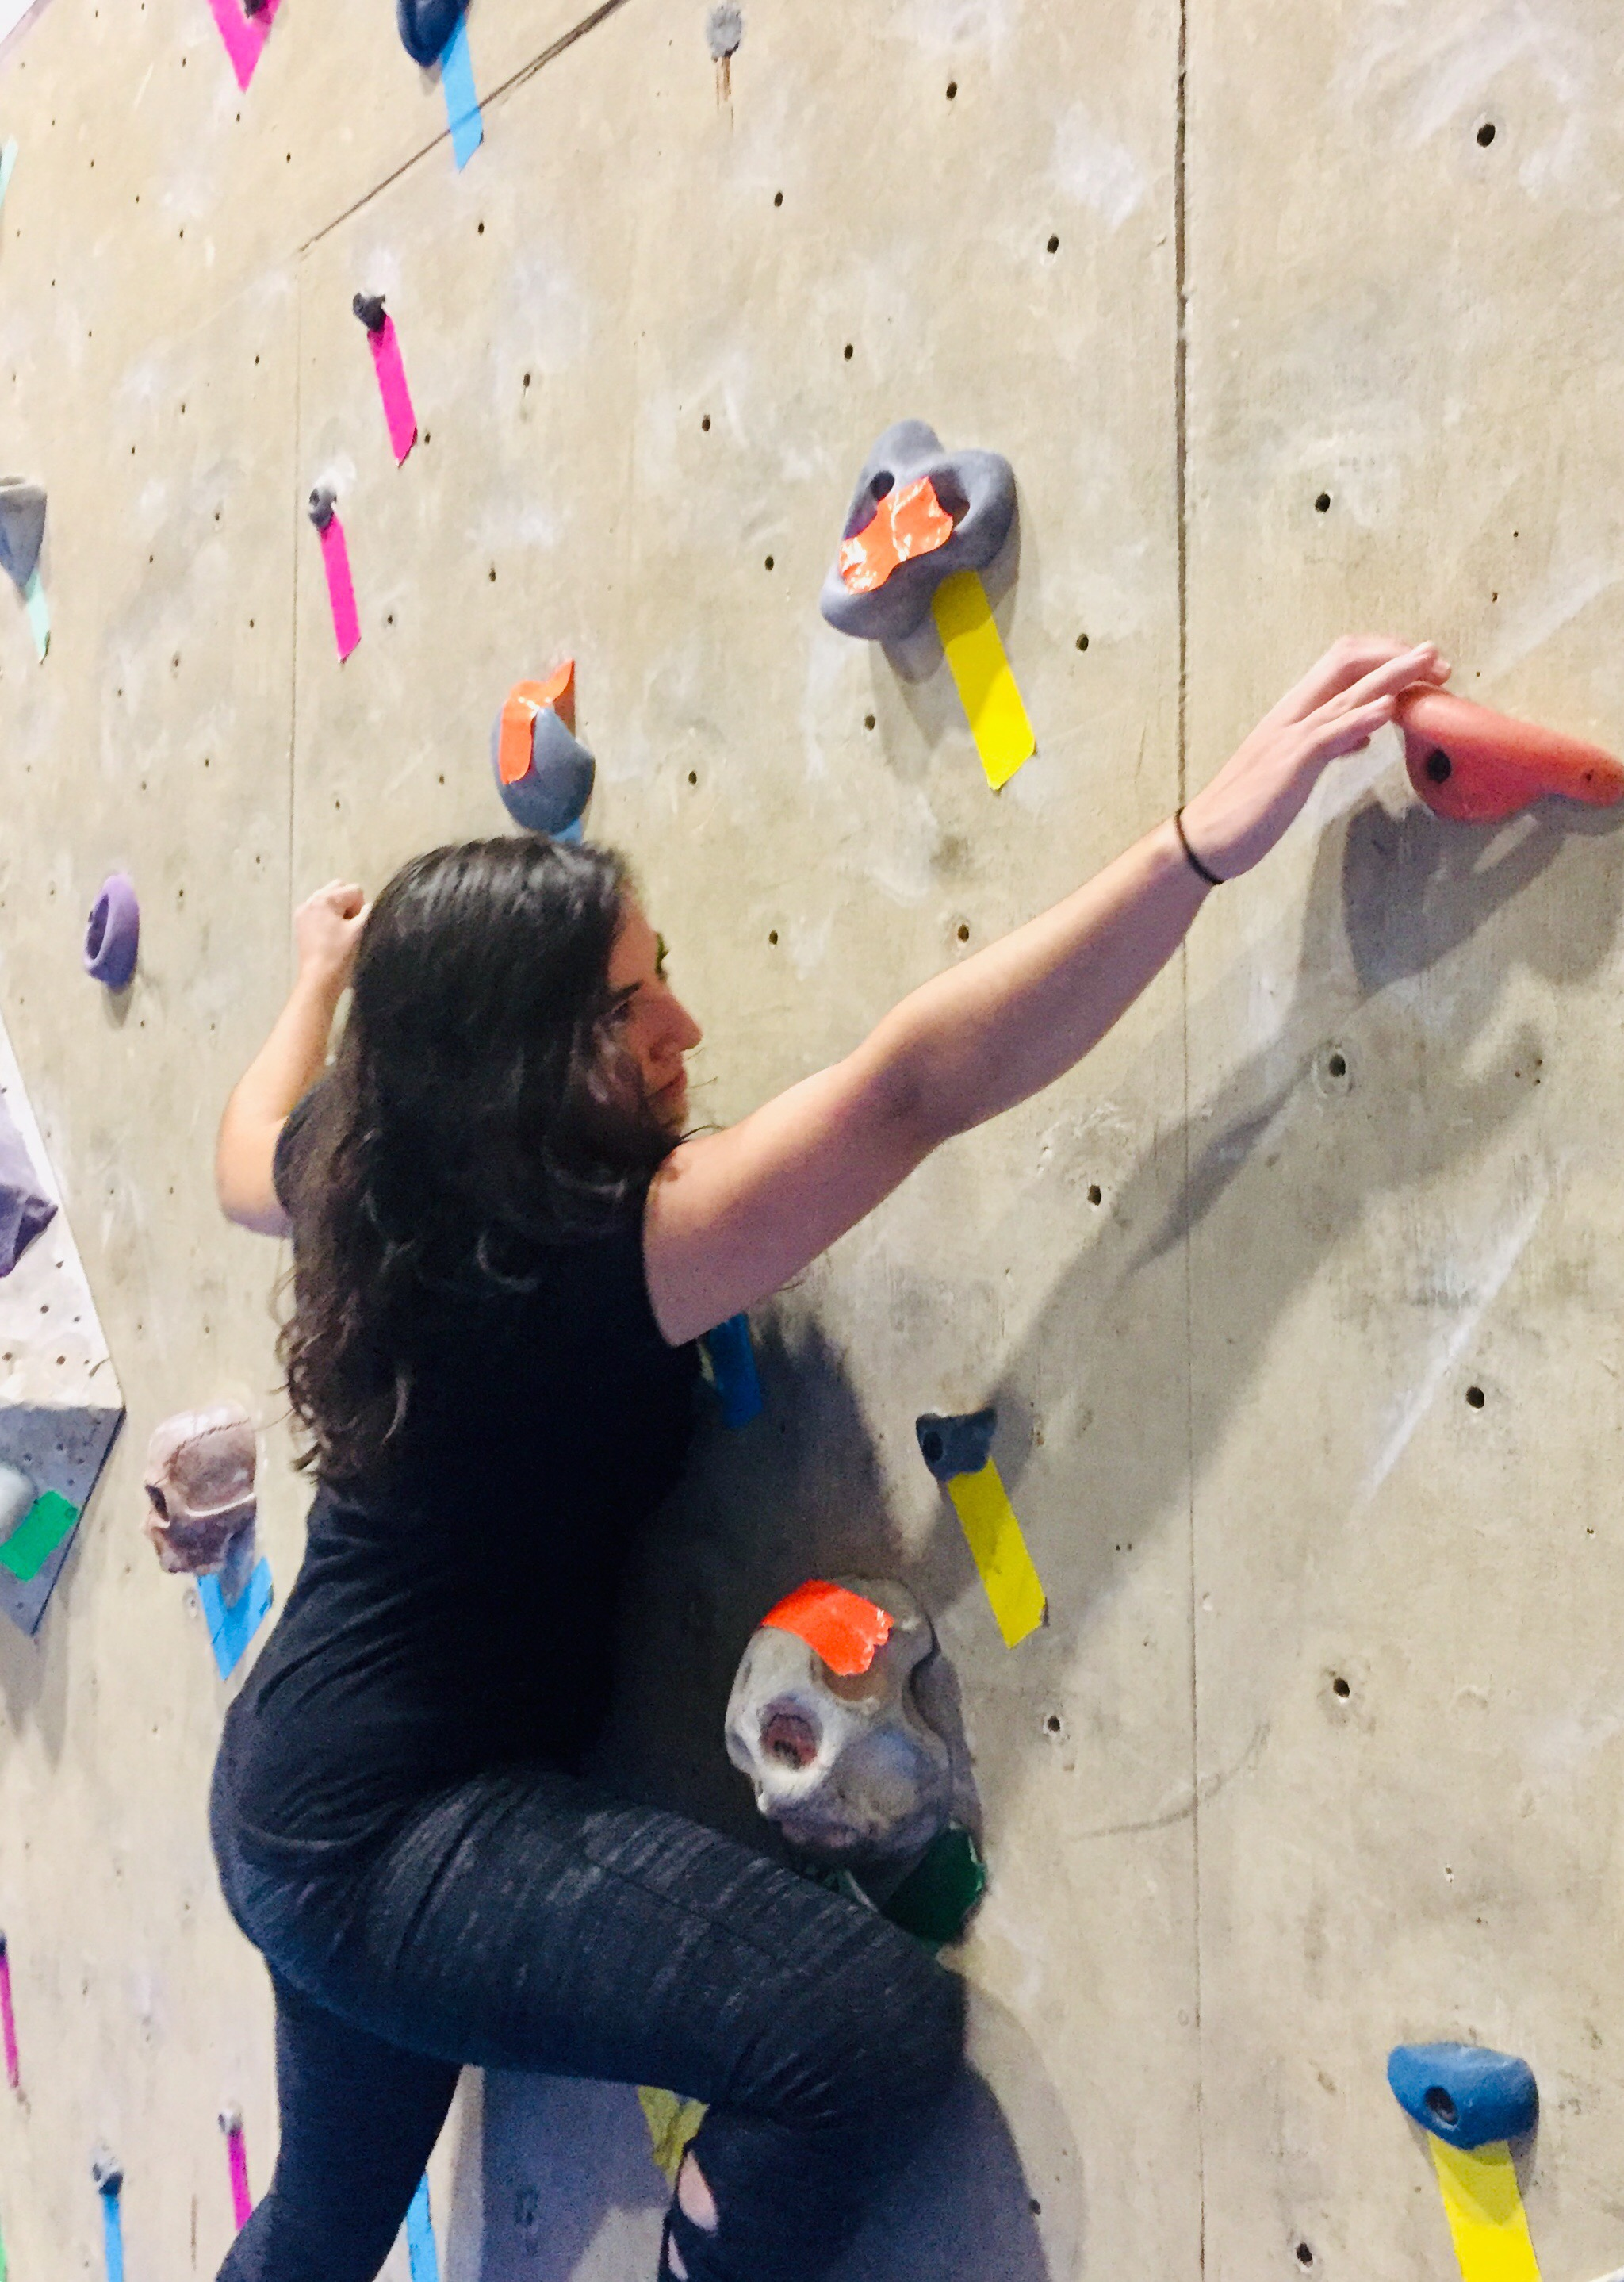 Female Climber Playing The Eliminator Climbing Game